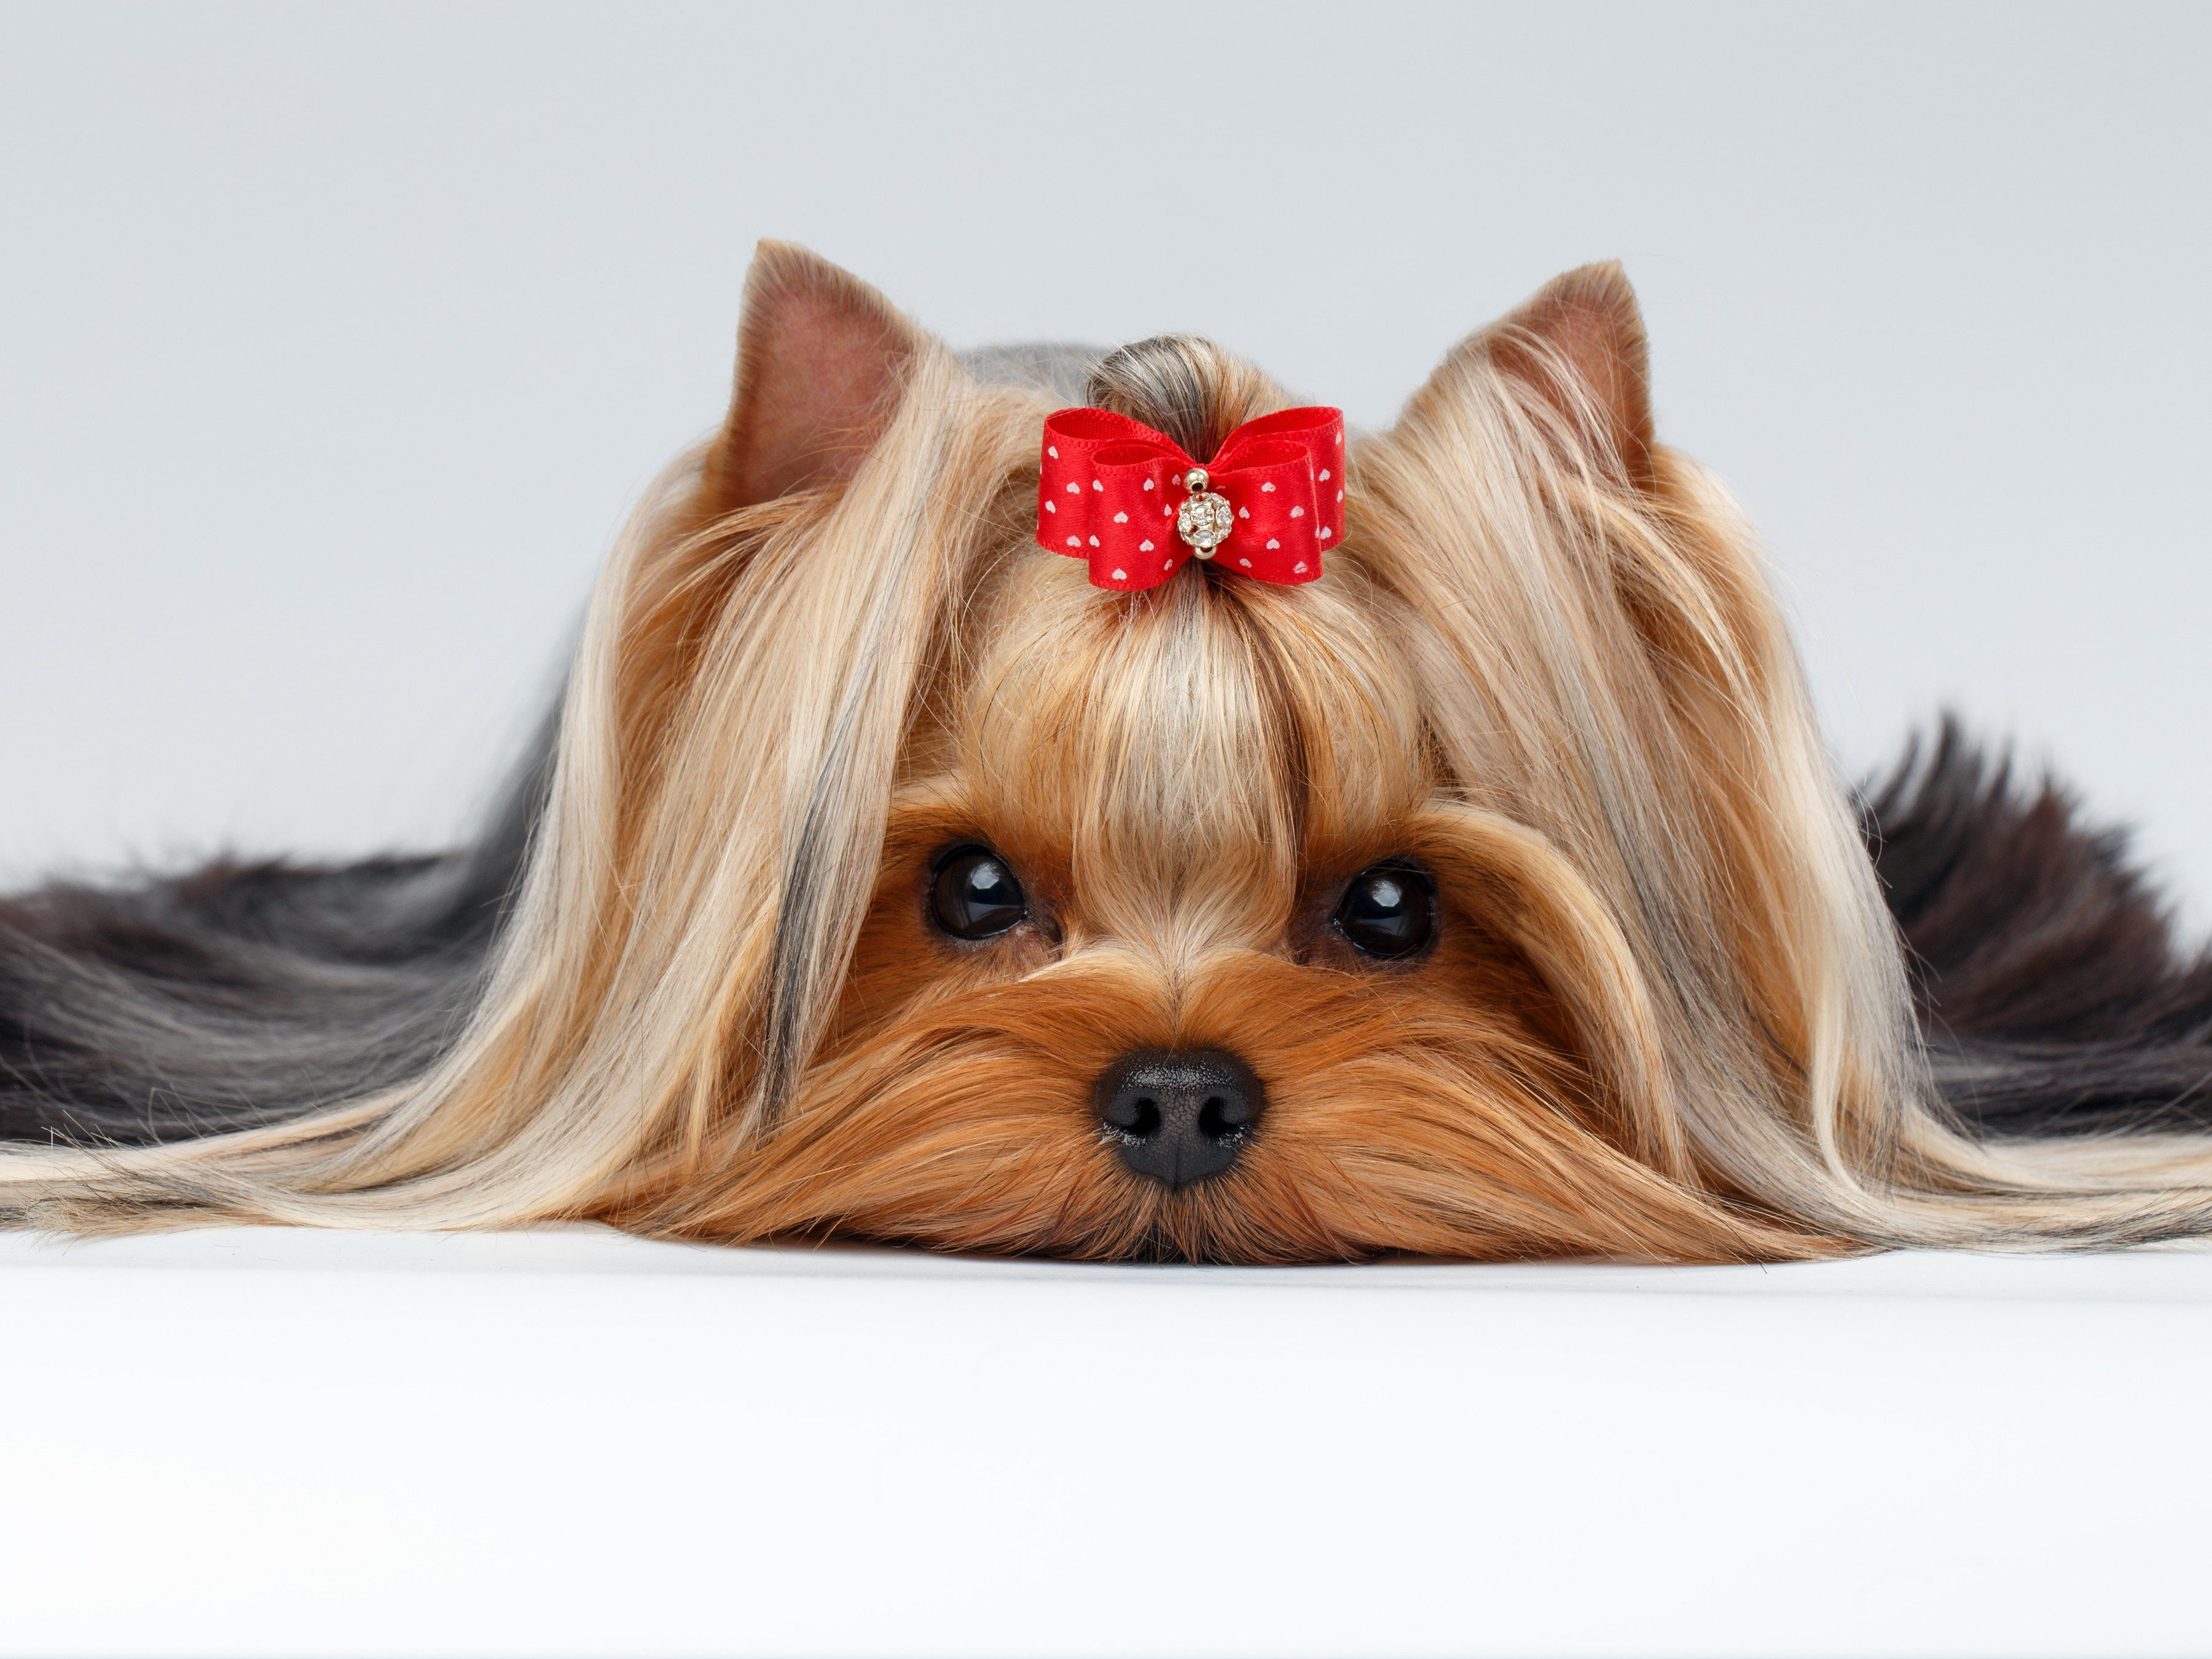 8. Be prepared to groom your dog